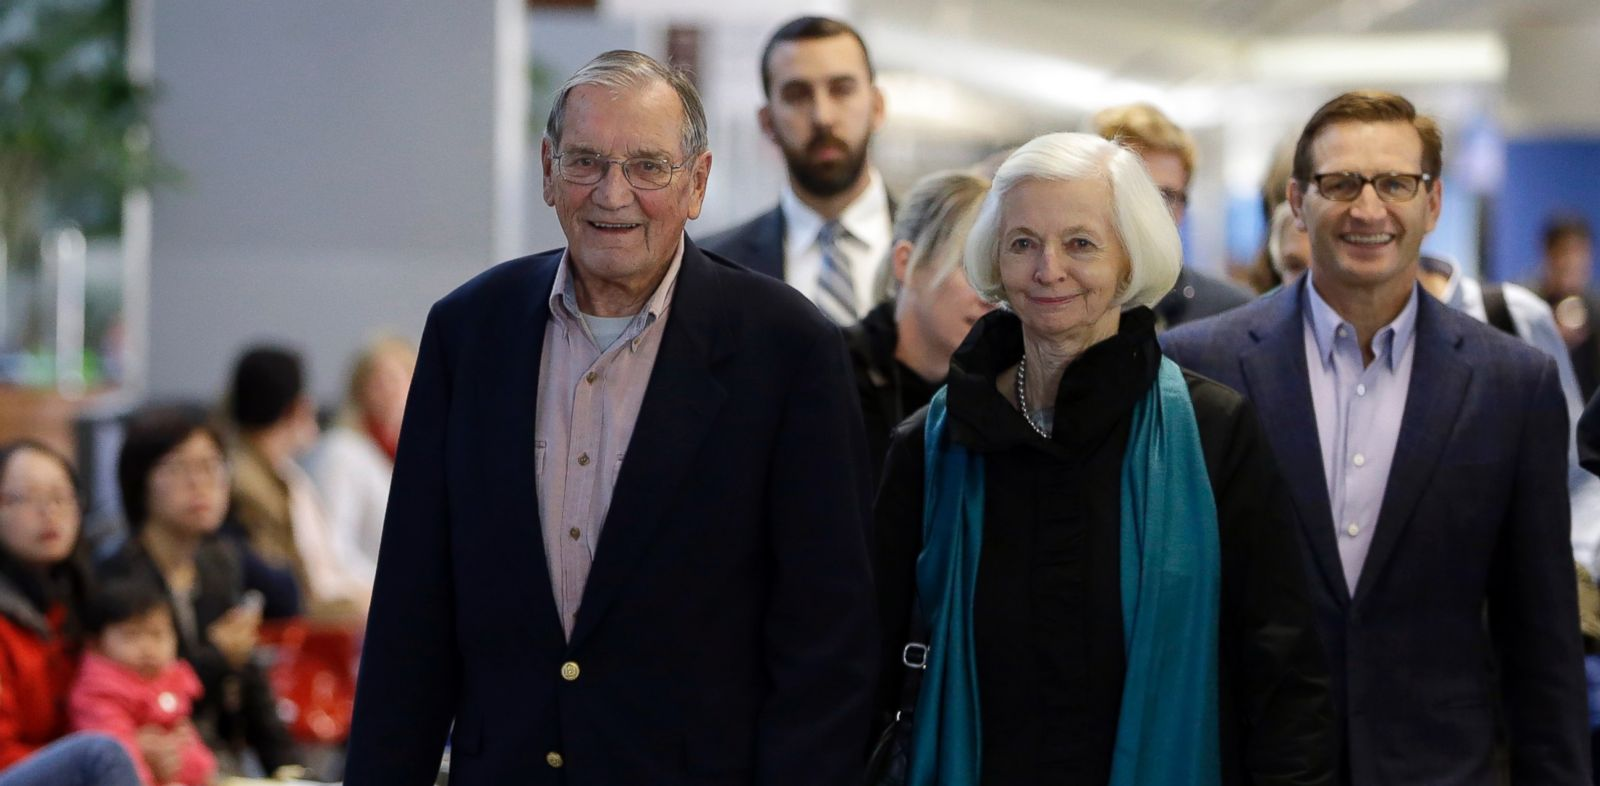 PHOTO: Merrill Newman, left, walks beside his wife Lee and son Jeffrey after arriving at San Francisco International Airport, Saturday, Dec. 6, 2013, in San Francisco.